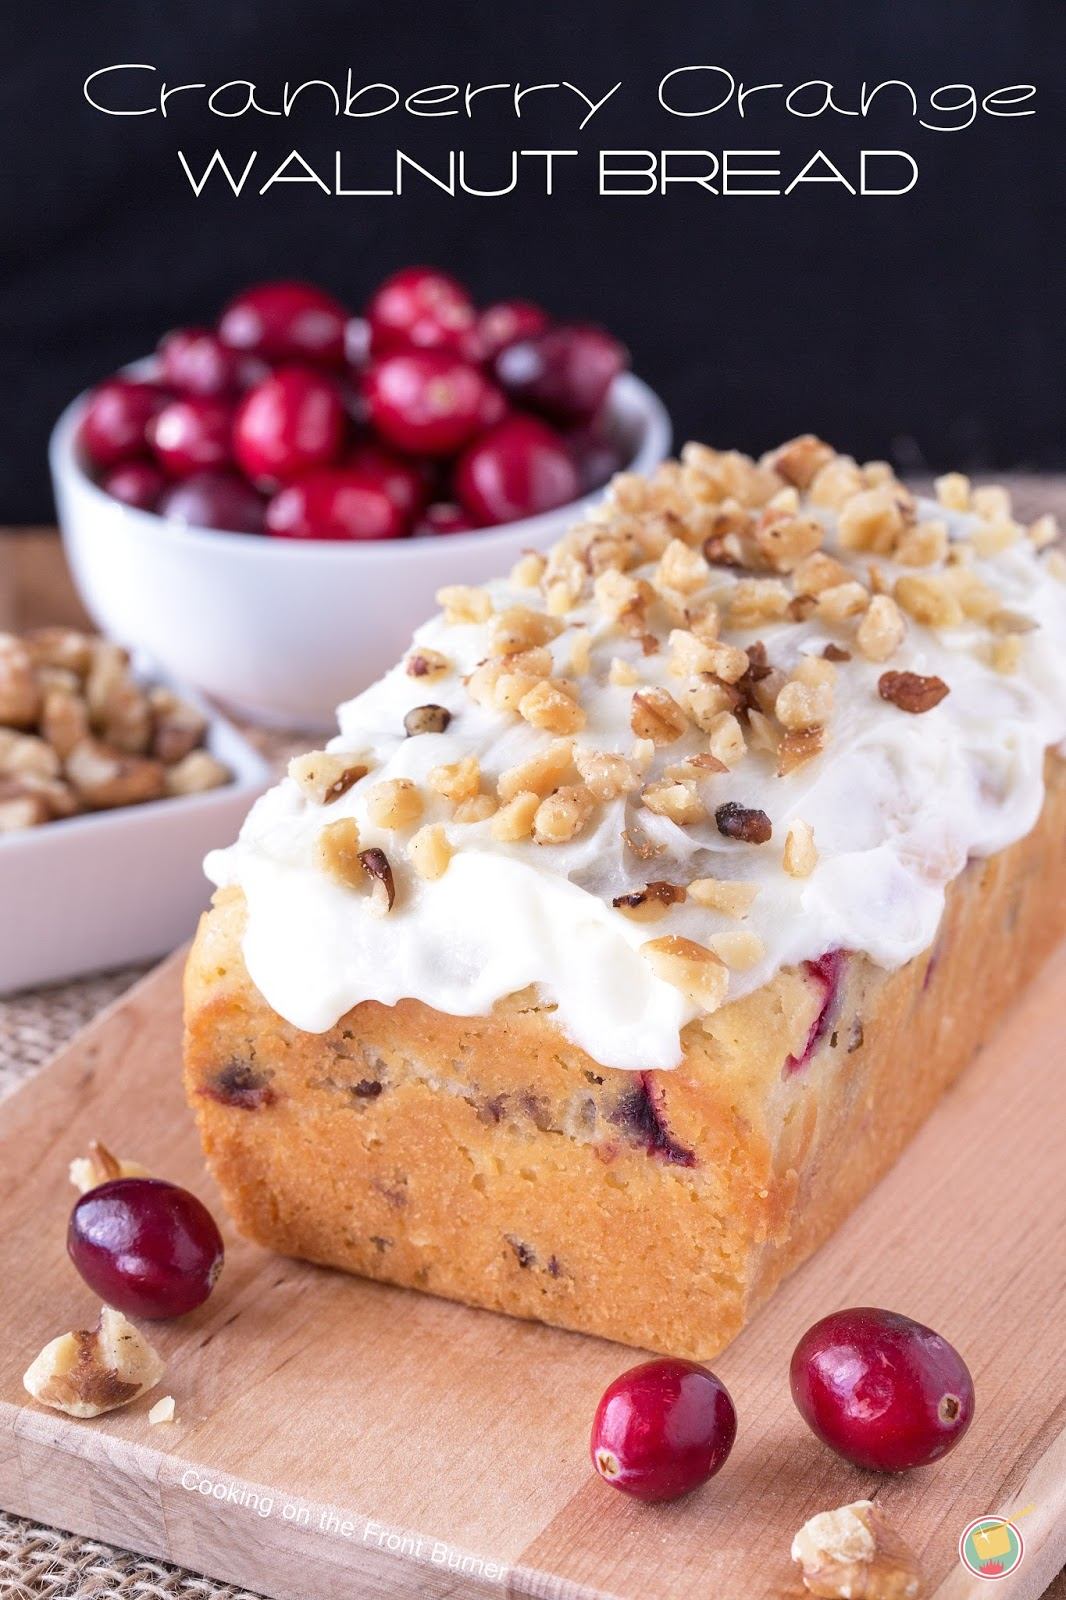 Enjoy this breakfast bread with the yummy flavors of cranberry, orange and walnut | Cooking on the Front Burner